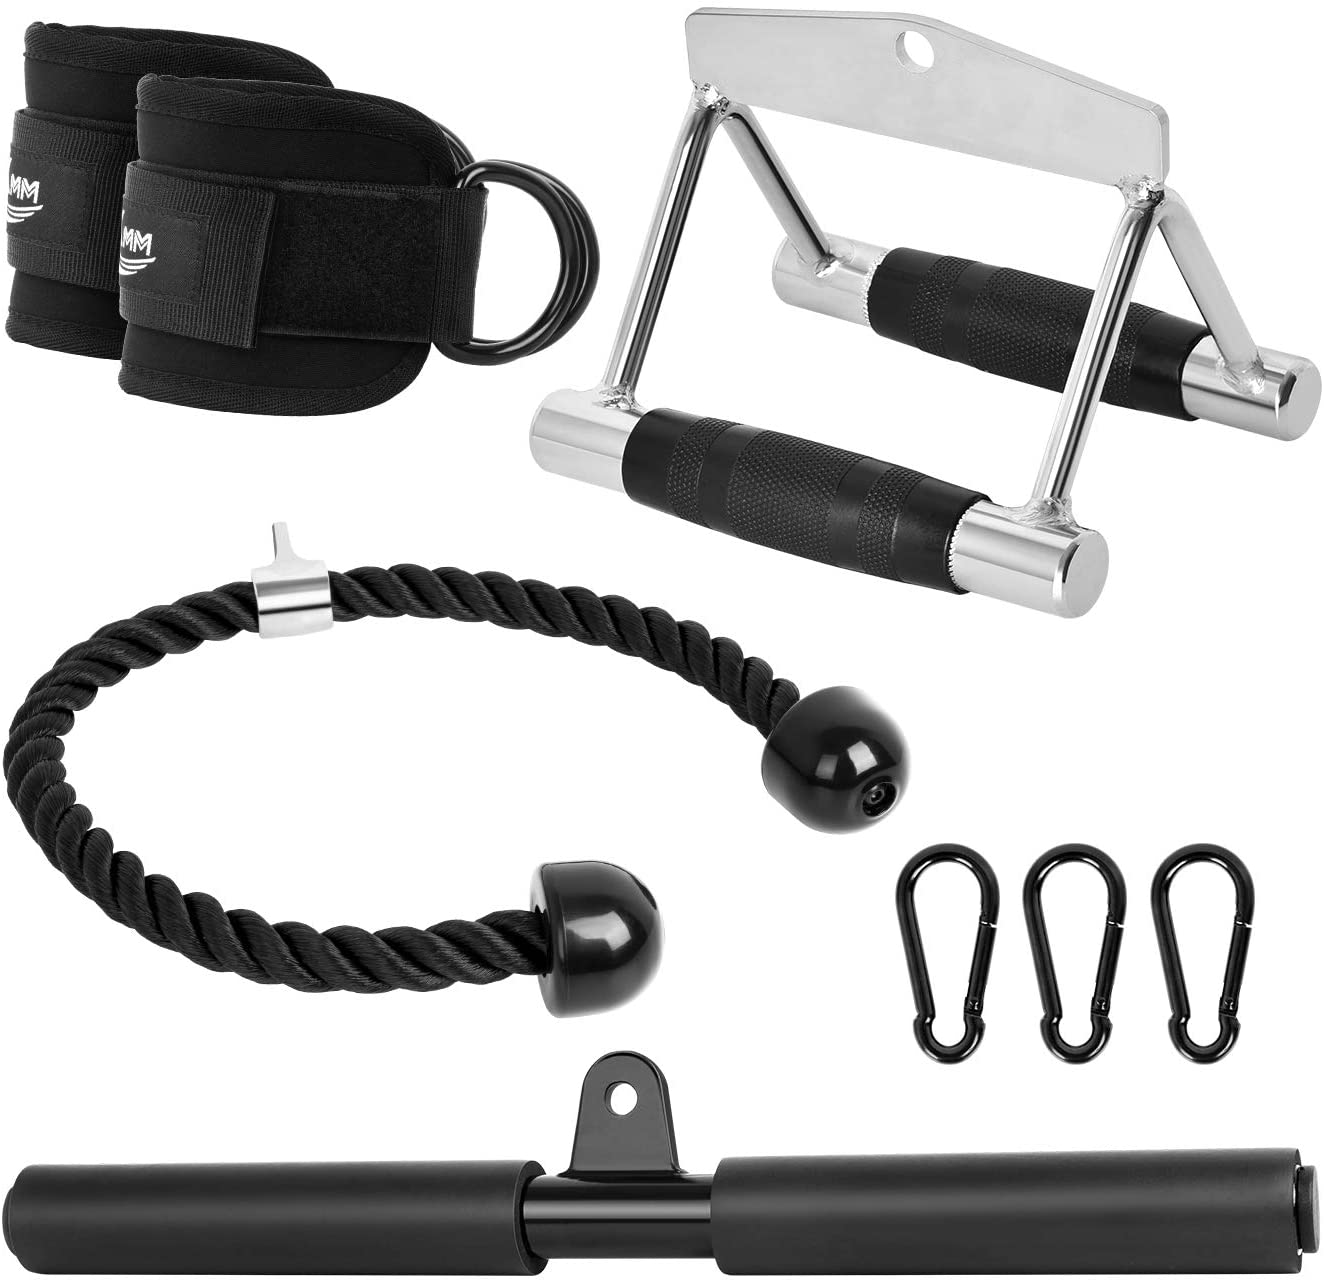 KMM Cable Machine Attachments Fitness Machine Accessories|4-Piece Set - Triceps Rope Pull Down Attachment + V-Shaped Handle + Straight Bar + Ankle Straps + Carabiner Clips for Home Gym Workout